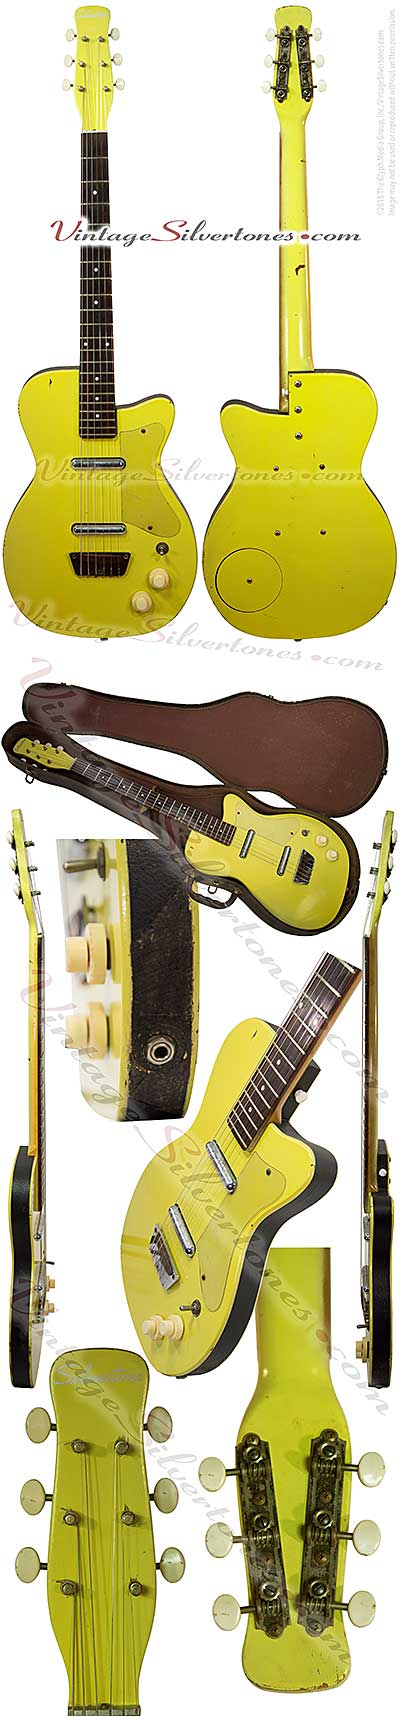 Silvertone 1360 made by Danelectro U2, two pickup, electric guitar, semi-hollow body, yellow body with black vinyl binding, masonite body, lipstick pickup, made in 1955